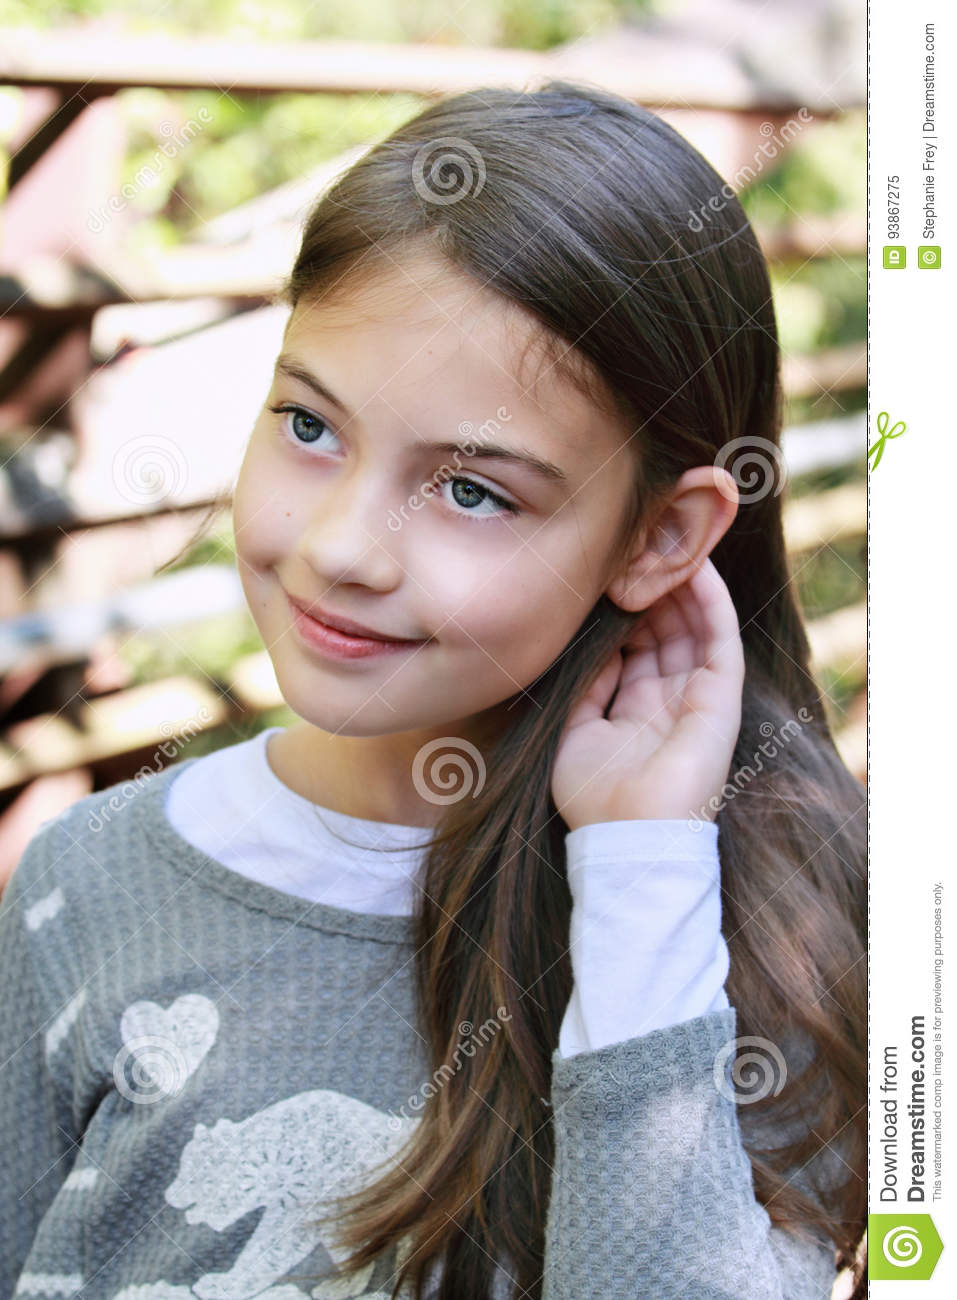 339 Beautiful Tween Girls Photos Free Royalty Stock From Dreamstime